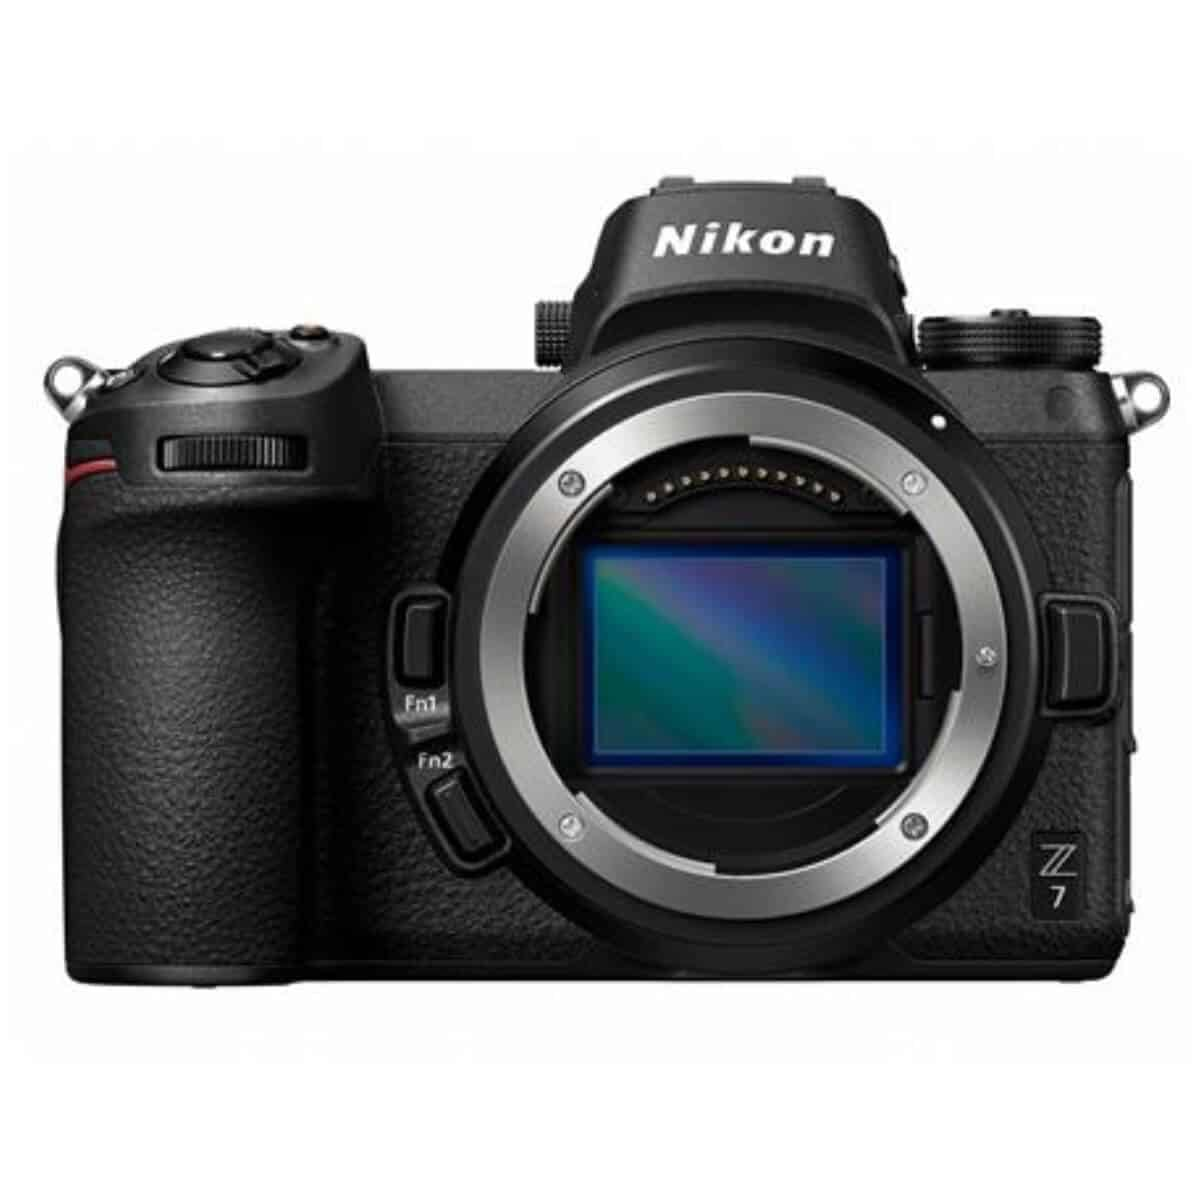 Nikon Z7 camera without the lens.